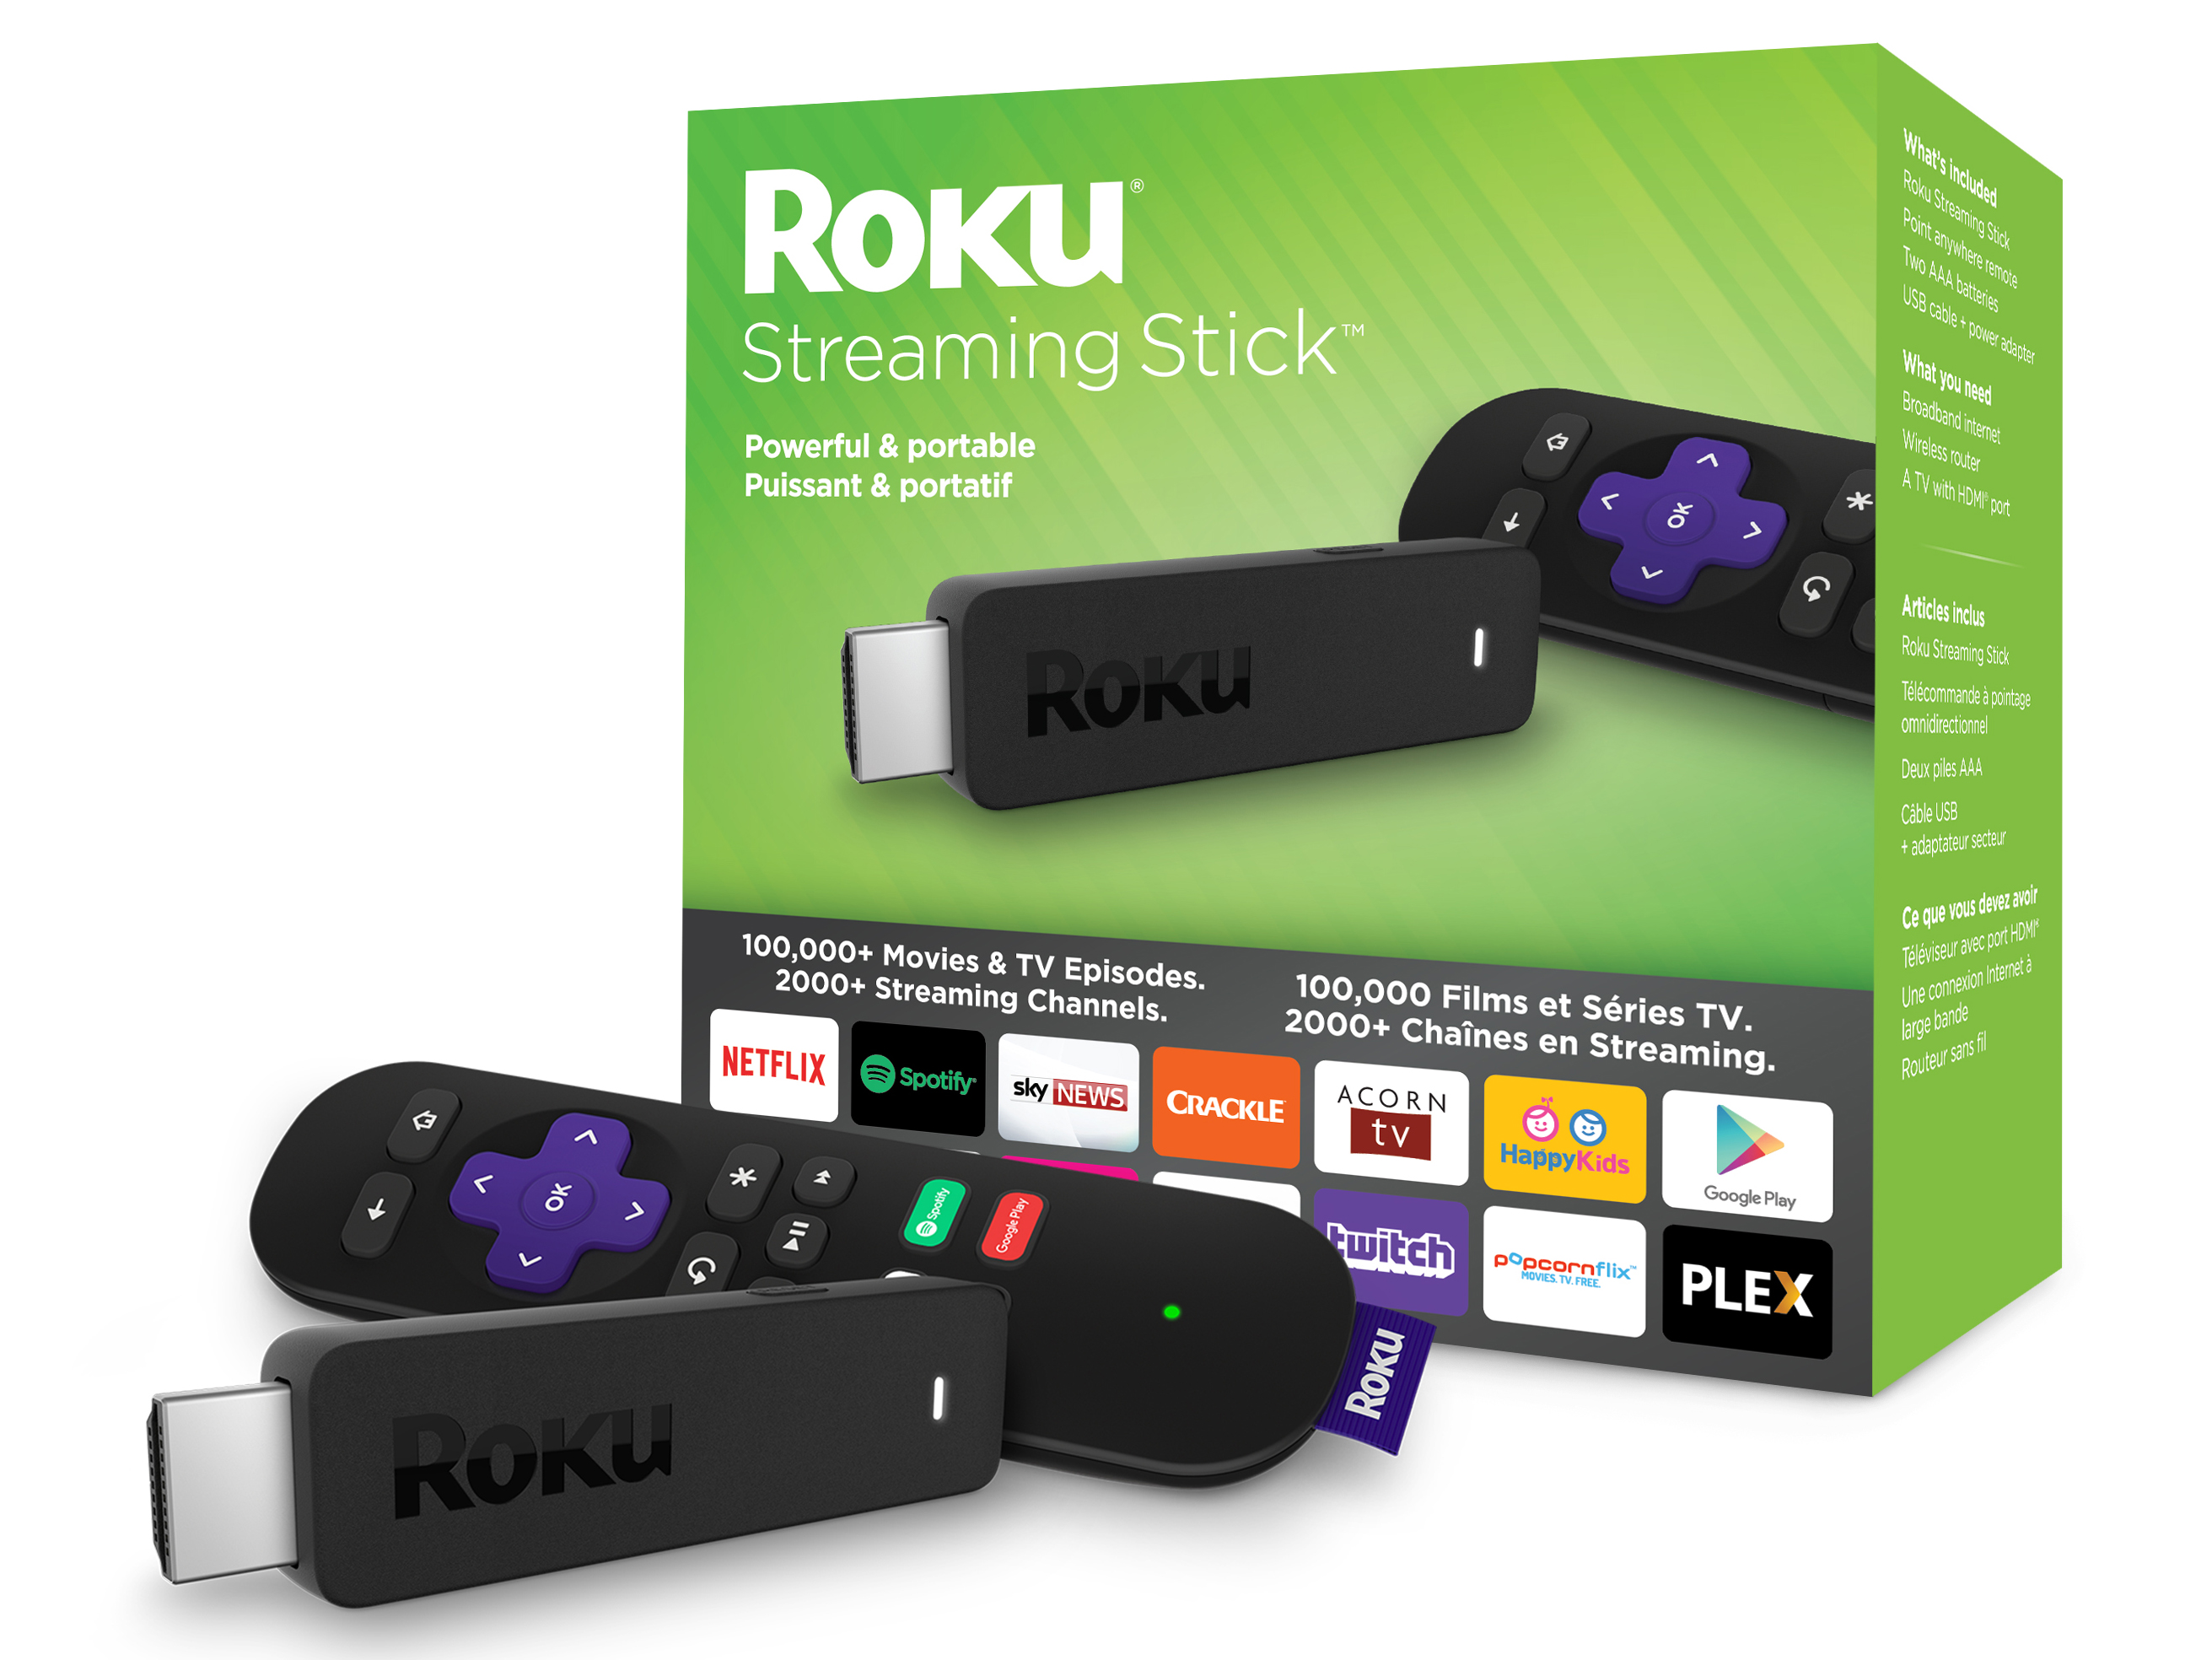 rokustreamingstick-2